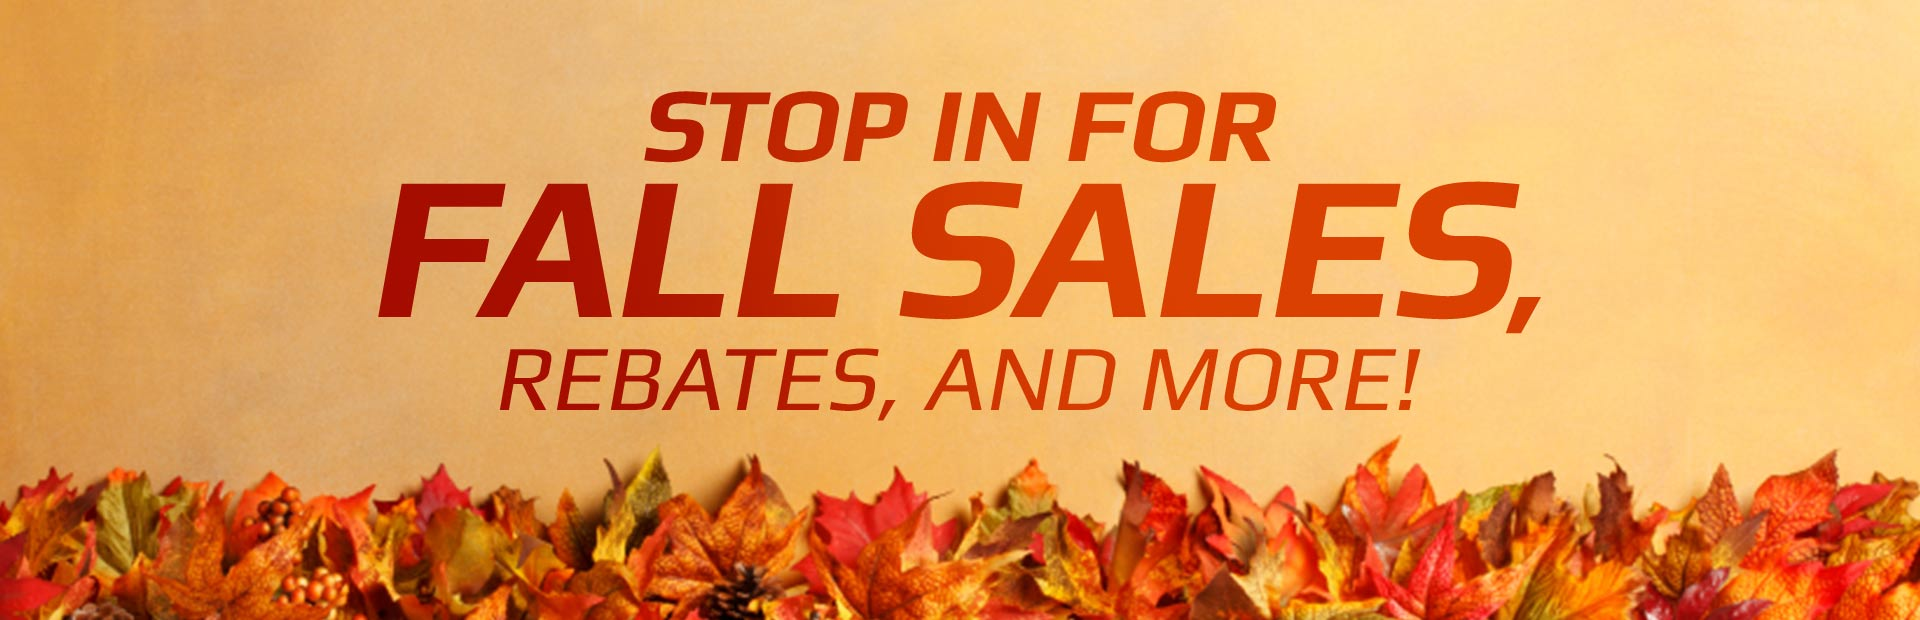 Stop in for fall sales, rebates, and more!